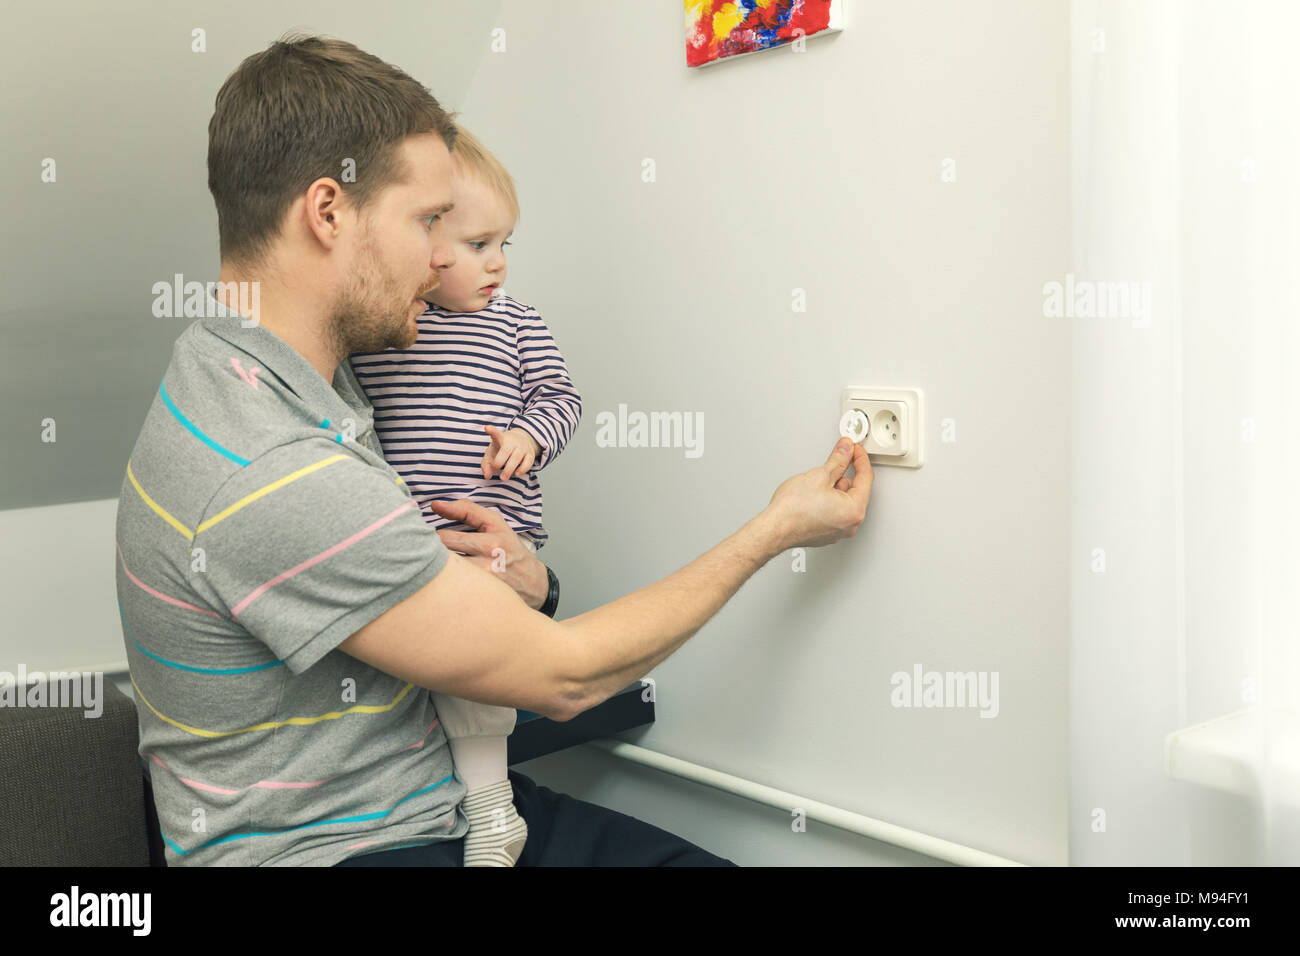 Child Safety At Home Father Takes Care To Protect Kid From Electrical Injury Stock Photo Alamy